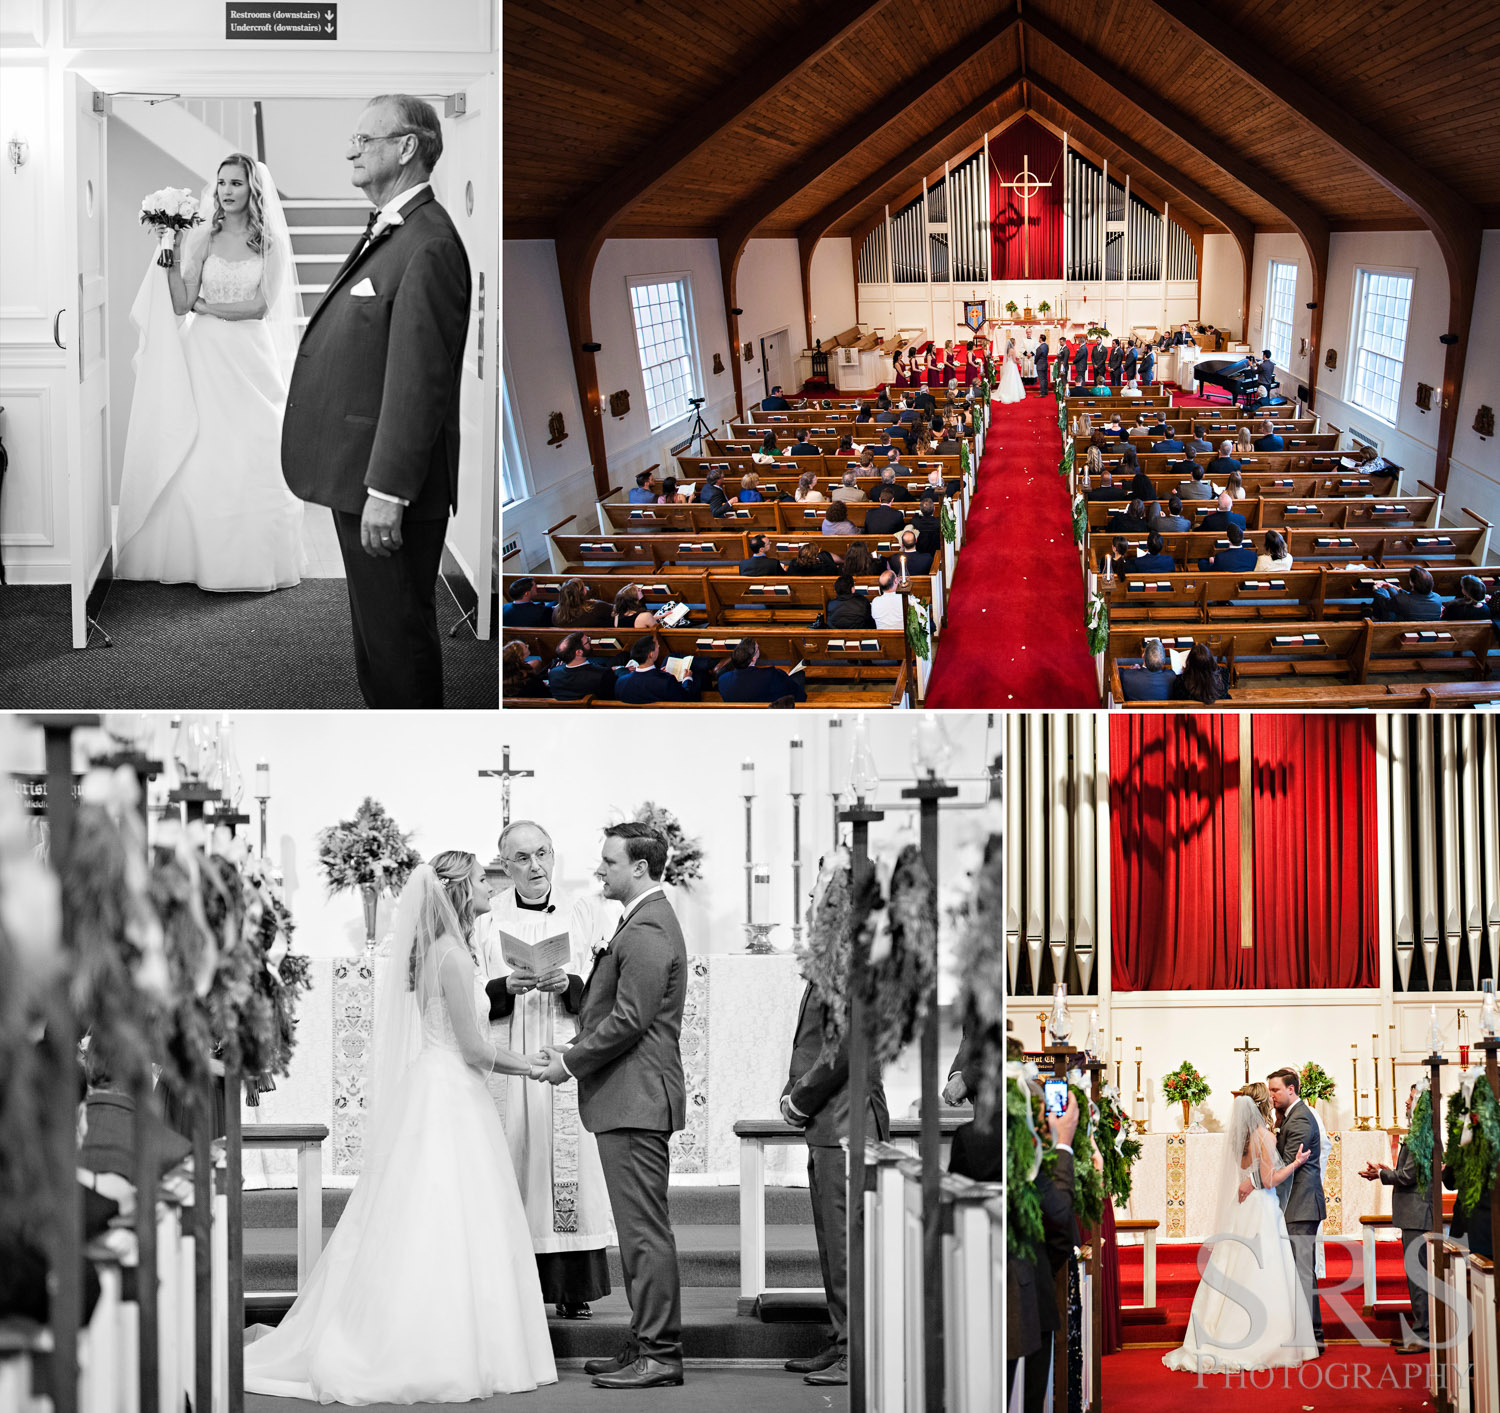 11_srs_photography_sara_stadtmiller_asbury_park_wedding_photography_nj_wedding_photographer_monmouth_county_wedding_photographer_christ_church_red_bank_weddin